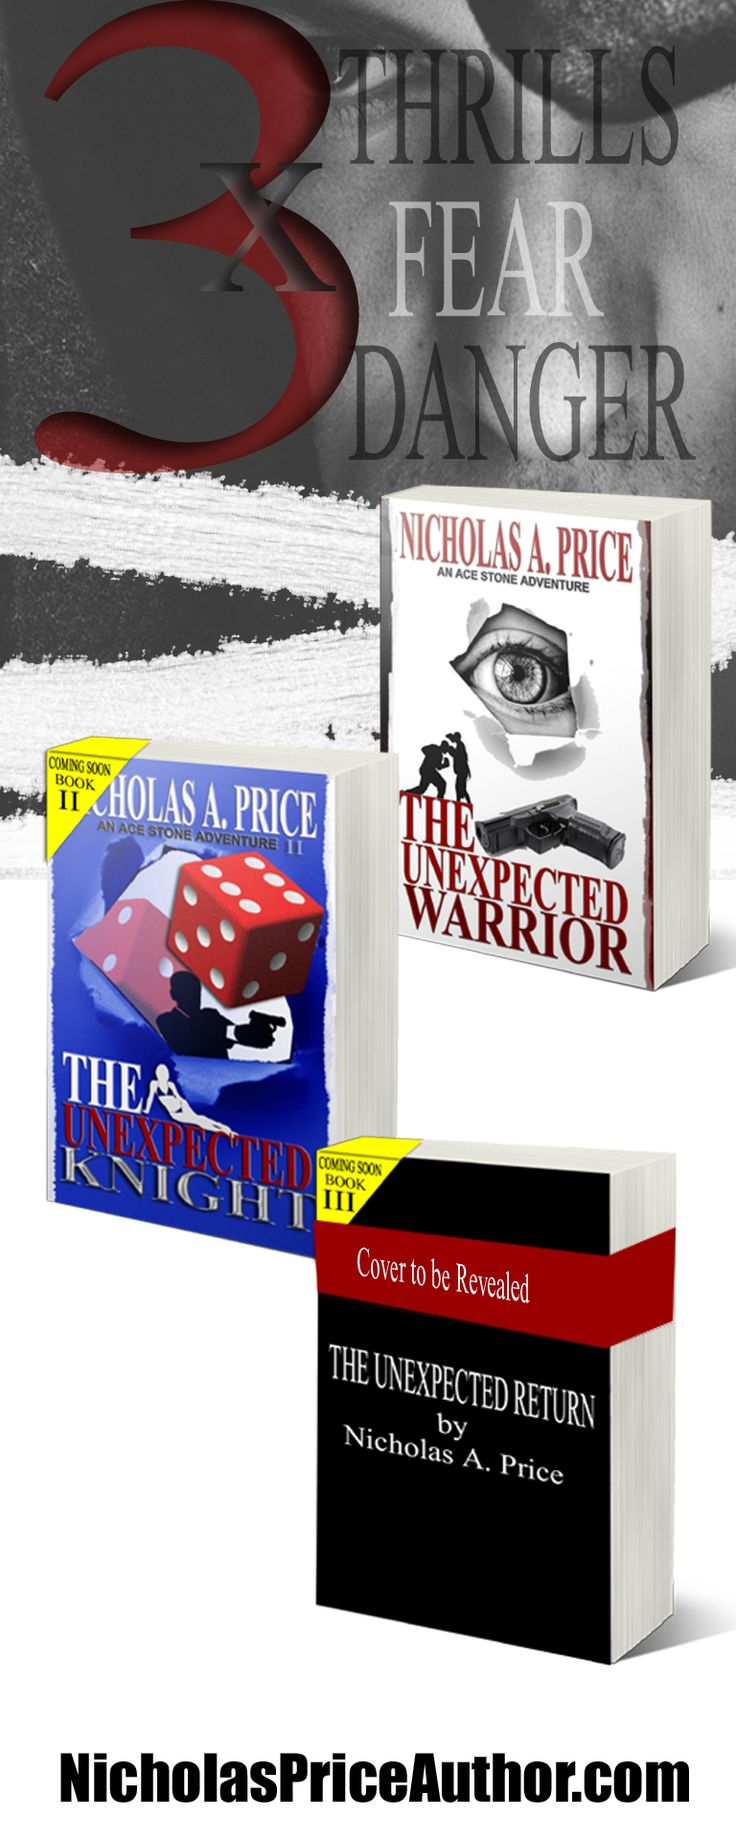 The Ace Stone Adventure Series London, Hard-Boiled, Noir, Crime Thriller Series,  Organized Crime, Fiction books